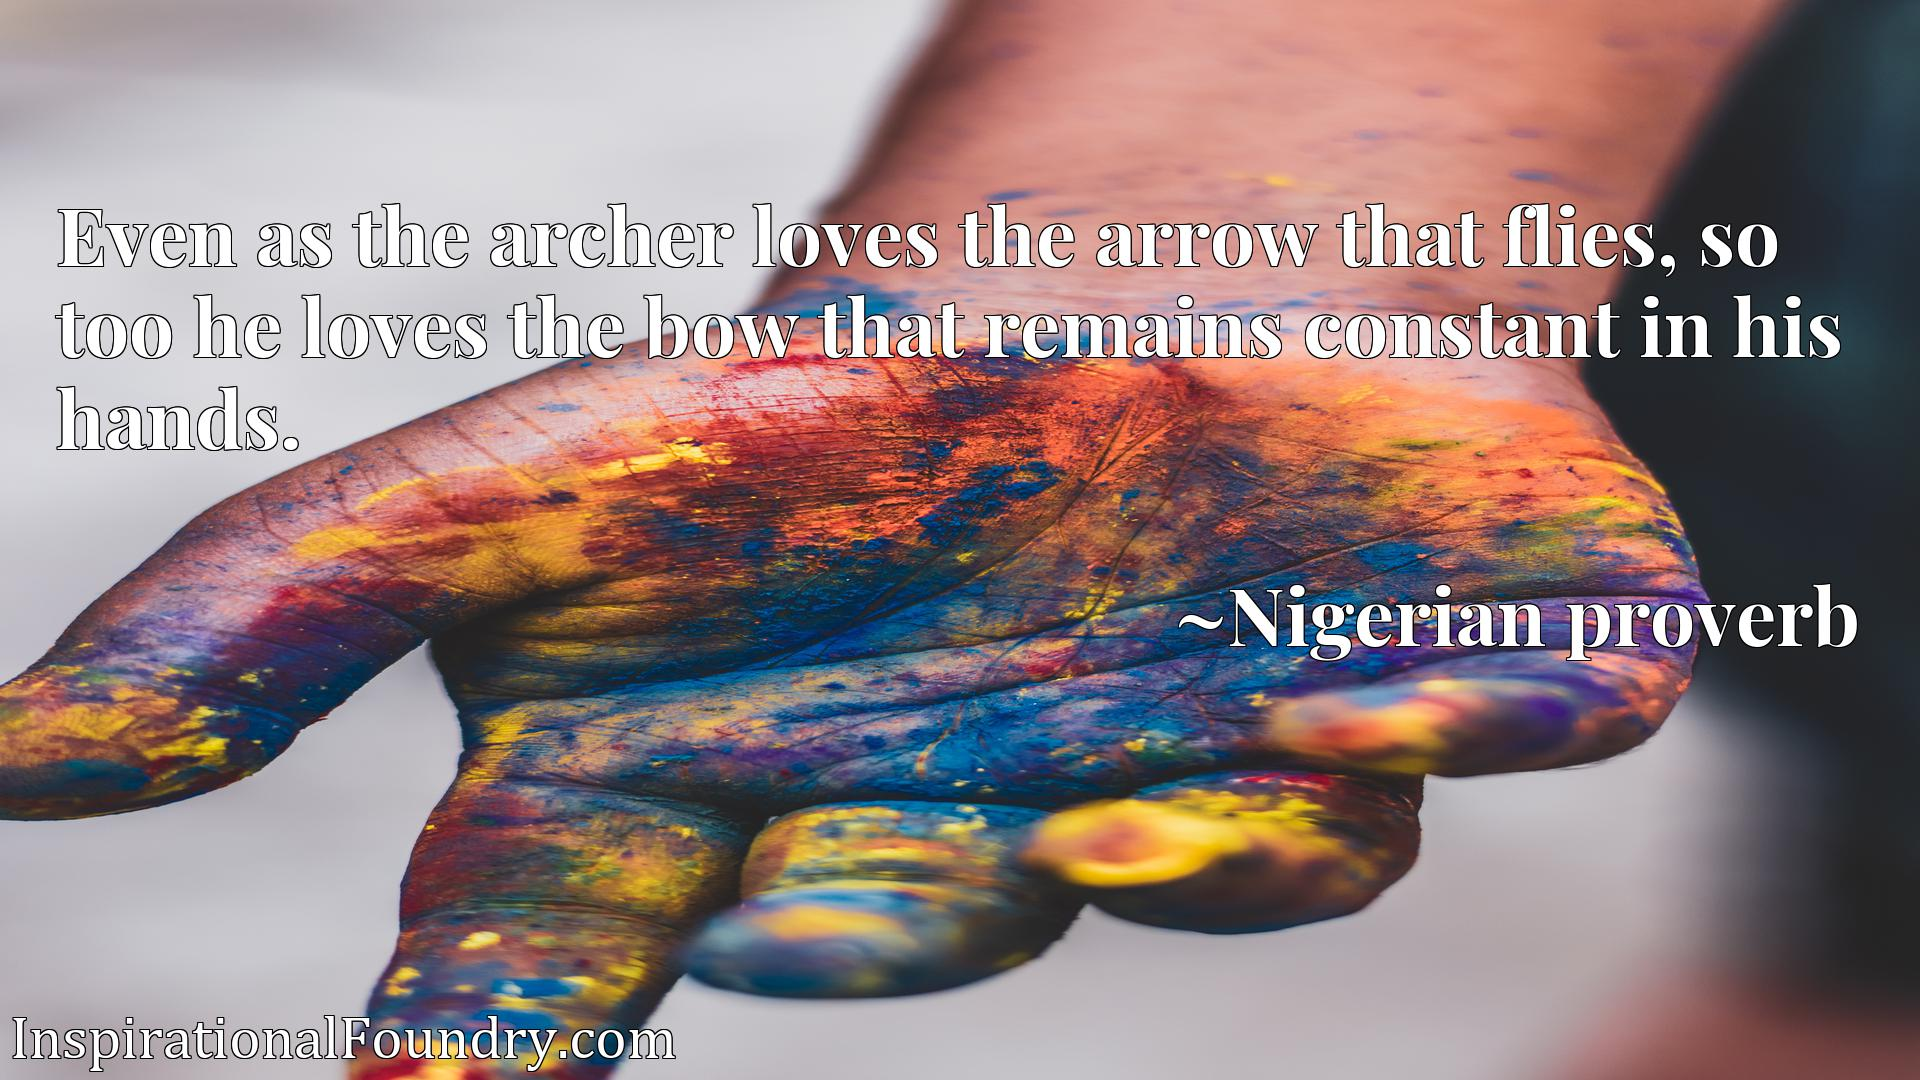 Even as the archer loves the arrow that flies, so too he loves the bow that remains constant in his hands.